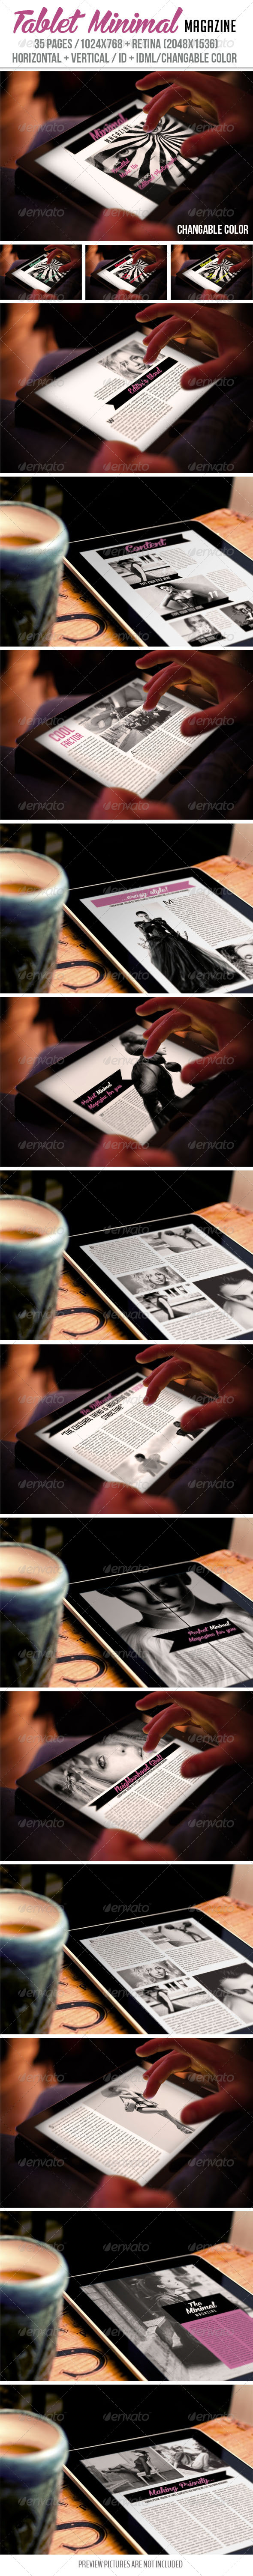 GraphicRiver Tablet Minimal Magazine 6923090